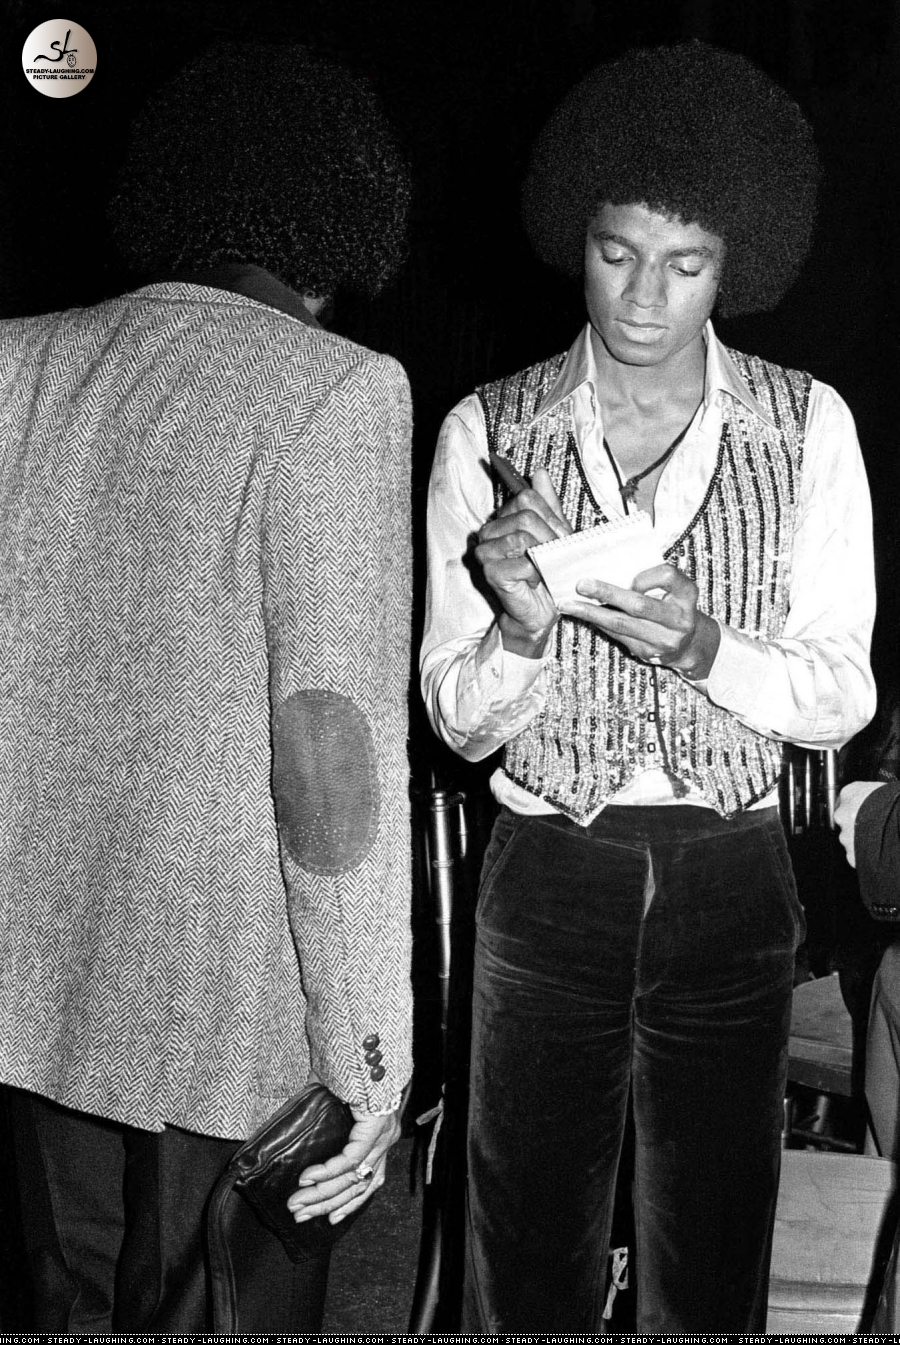 Michael @ the Premiere of The Wiz [1978]